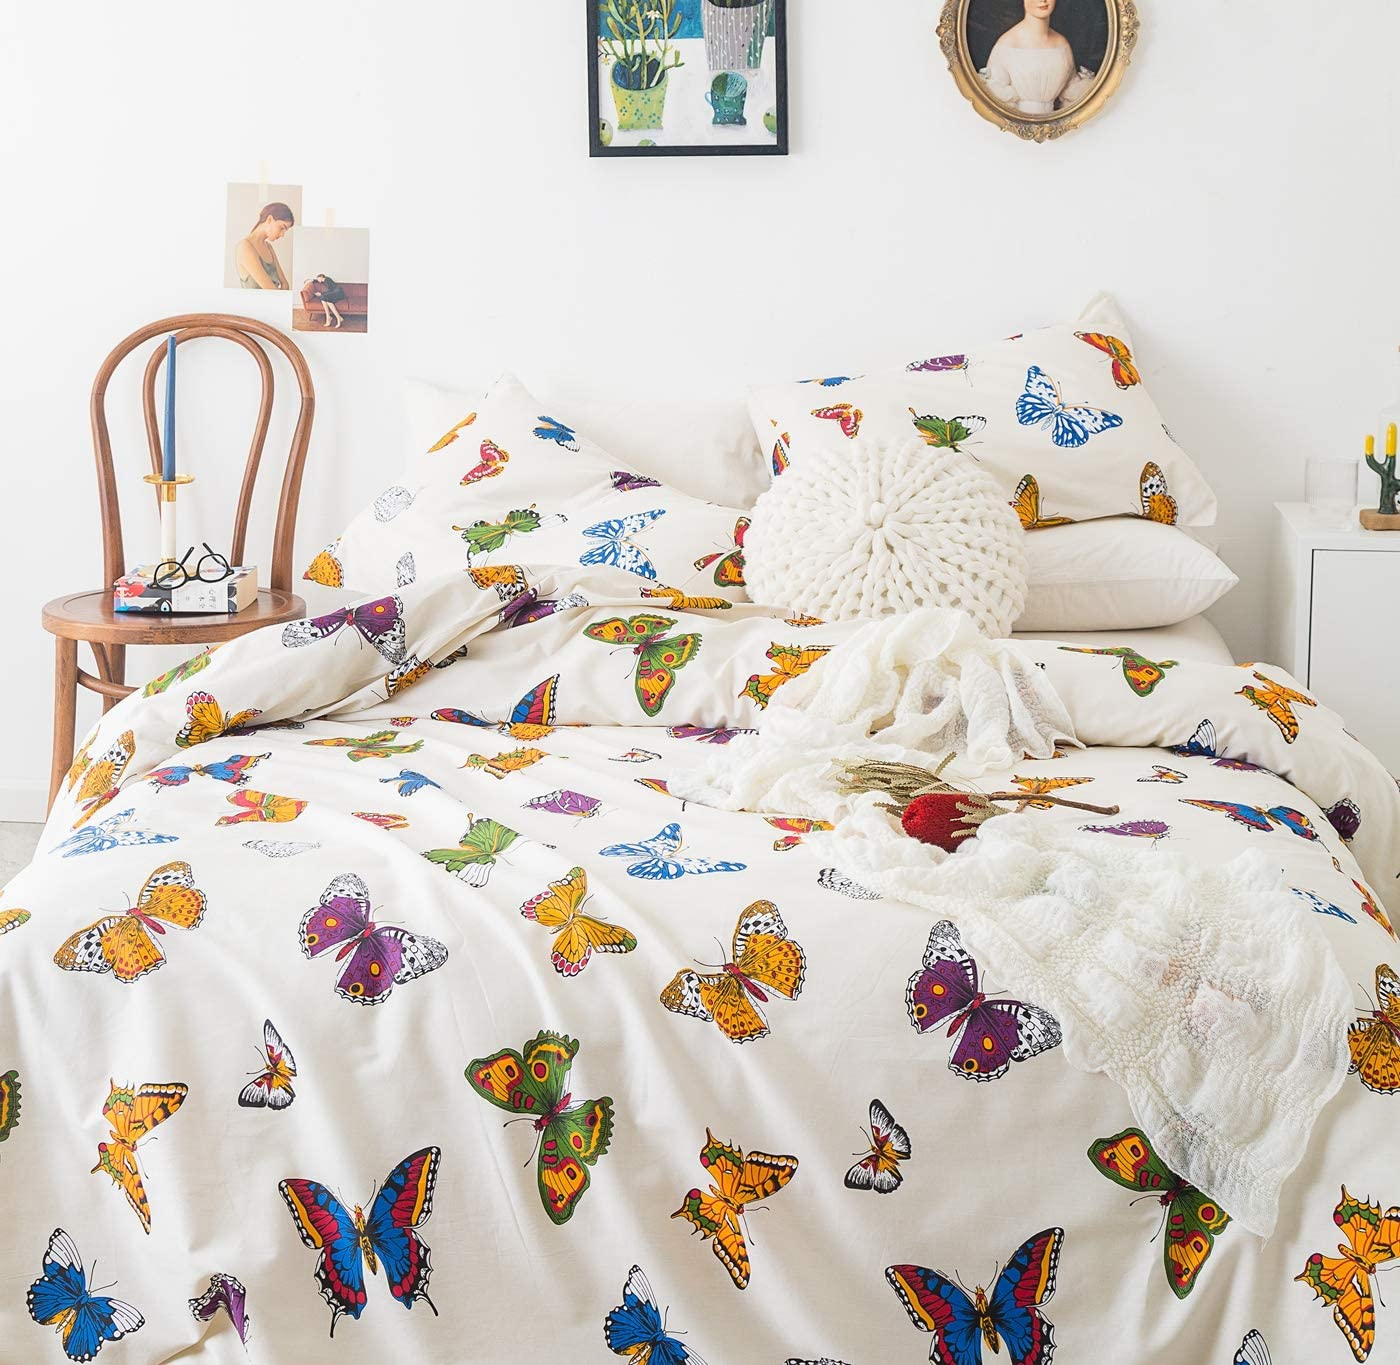 Yuheguoji 3 Pieces Duvet Cover Set 100 Cotton King Size Boho Butterfly Bedding Set 1 Colorful Animal Print Duvet Cover With Zipper Ties 2 Pillowcases Hotel Quality Soft Breathable Comfortable Durable Kitchen Dining Amazon Com